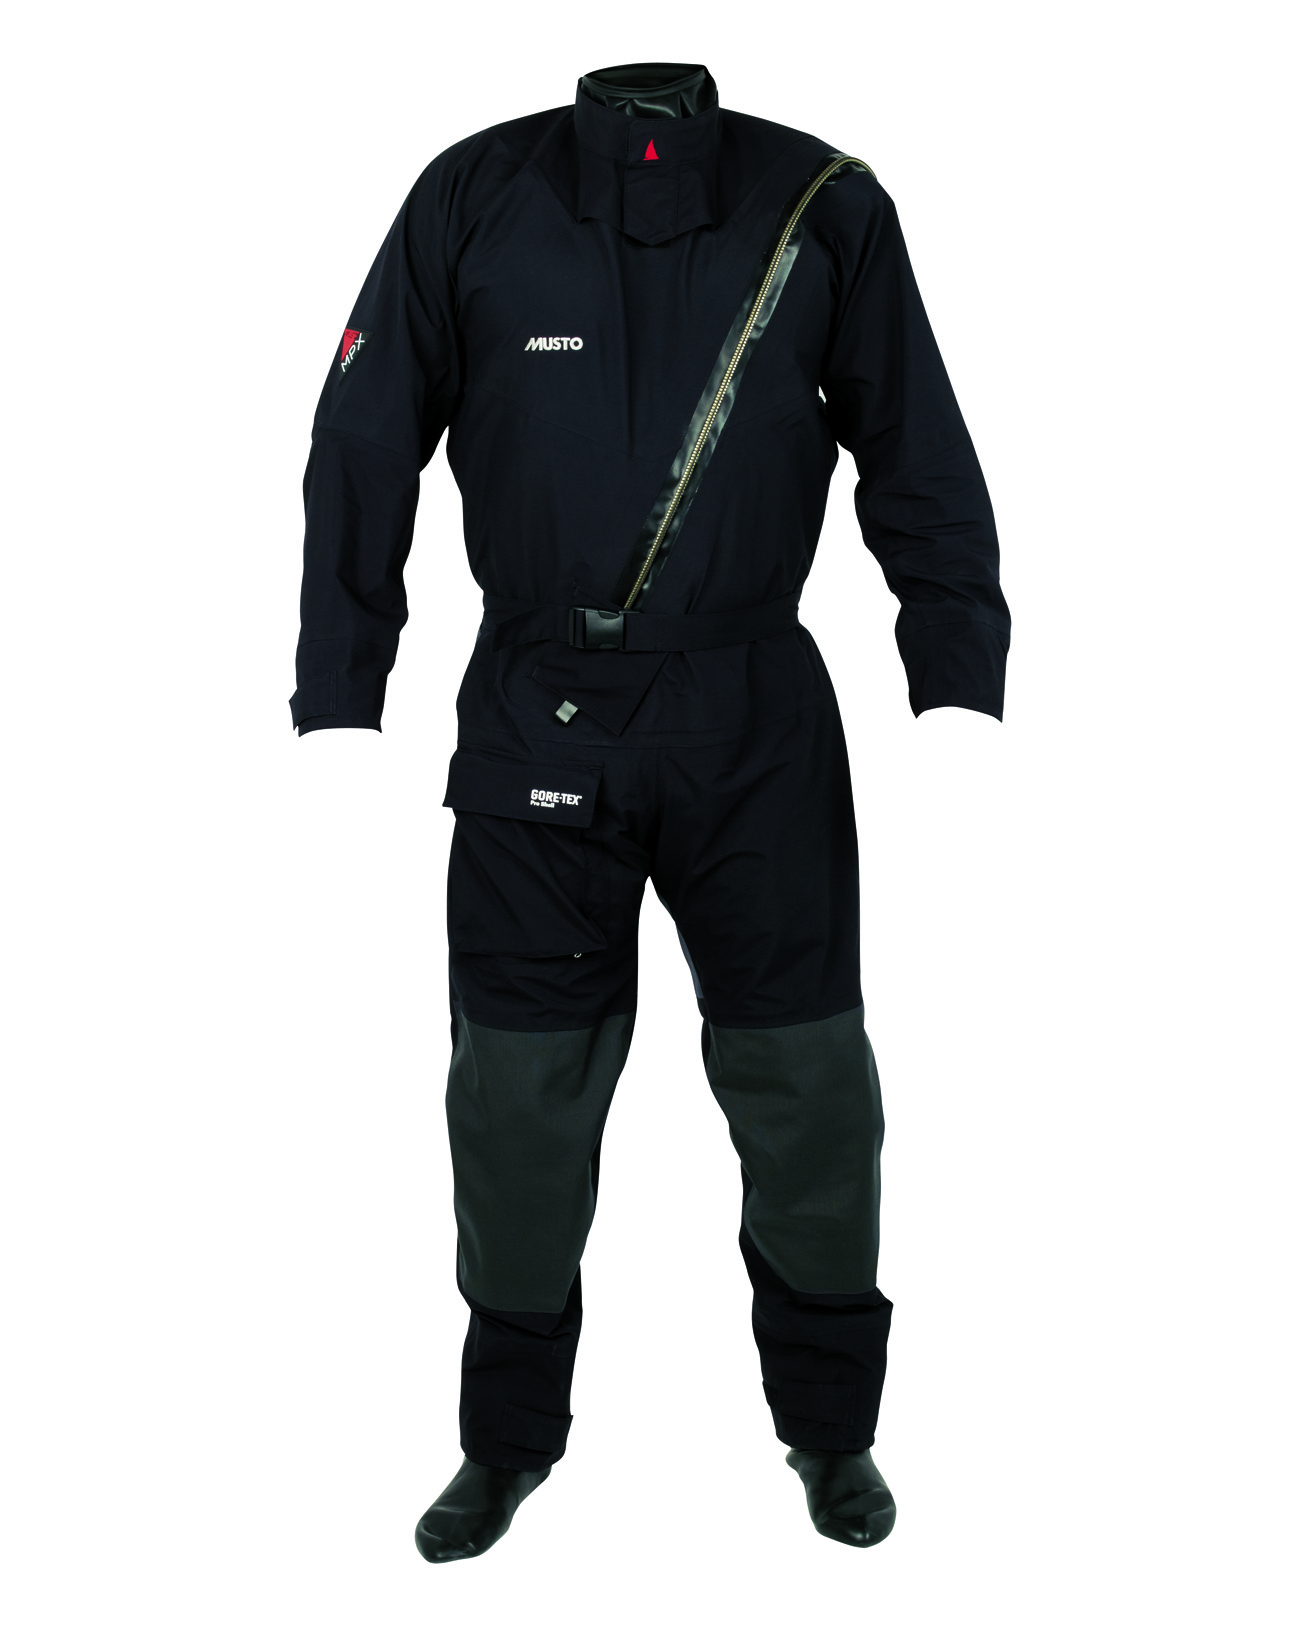 sm1431_MPX drysuit black-darkgrey_1